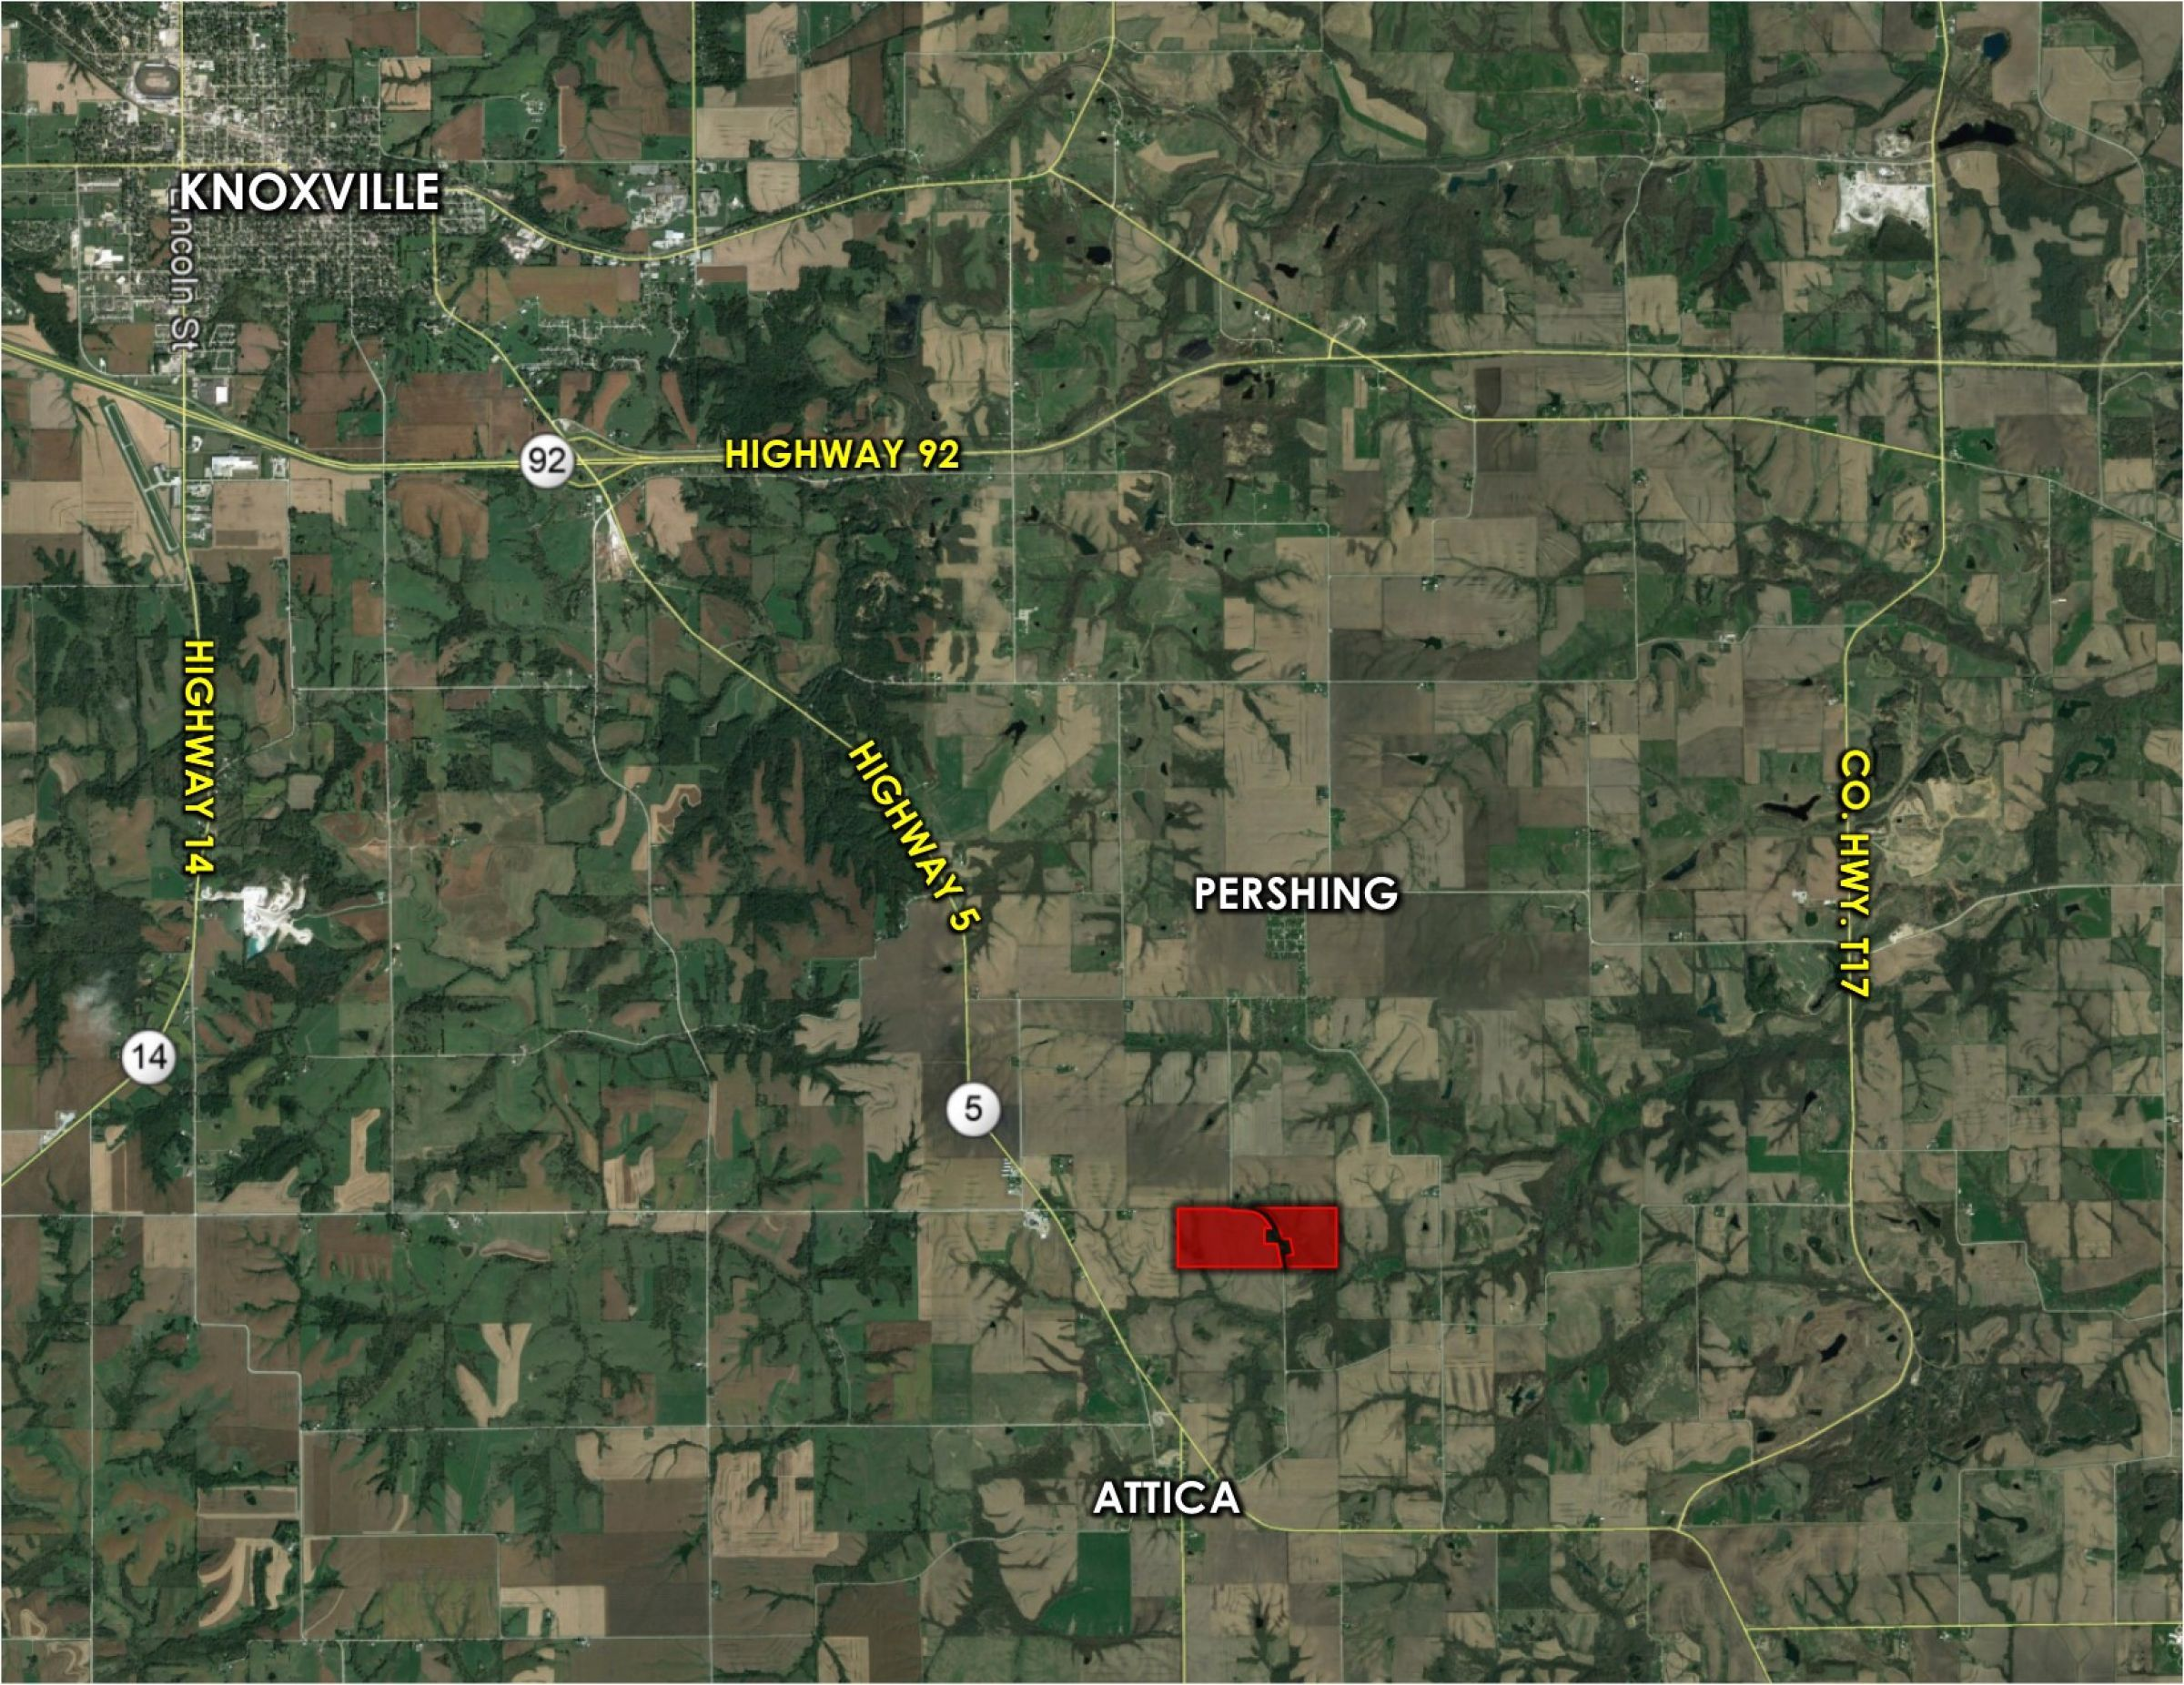 auctions-land-marion-county-iowa-78-acres-listing-number-15197-2-2020-10-06-154850.jpg